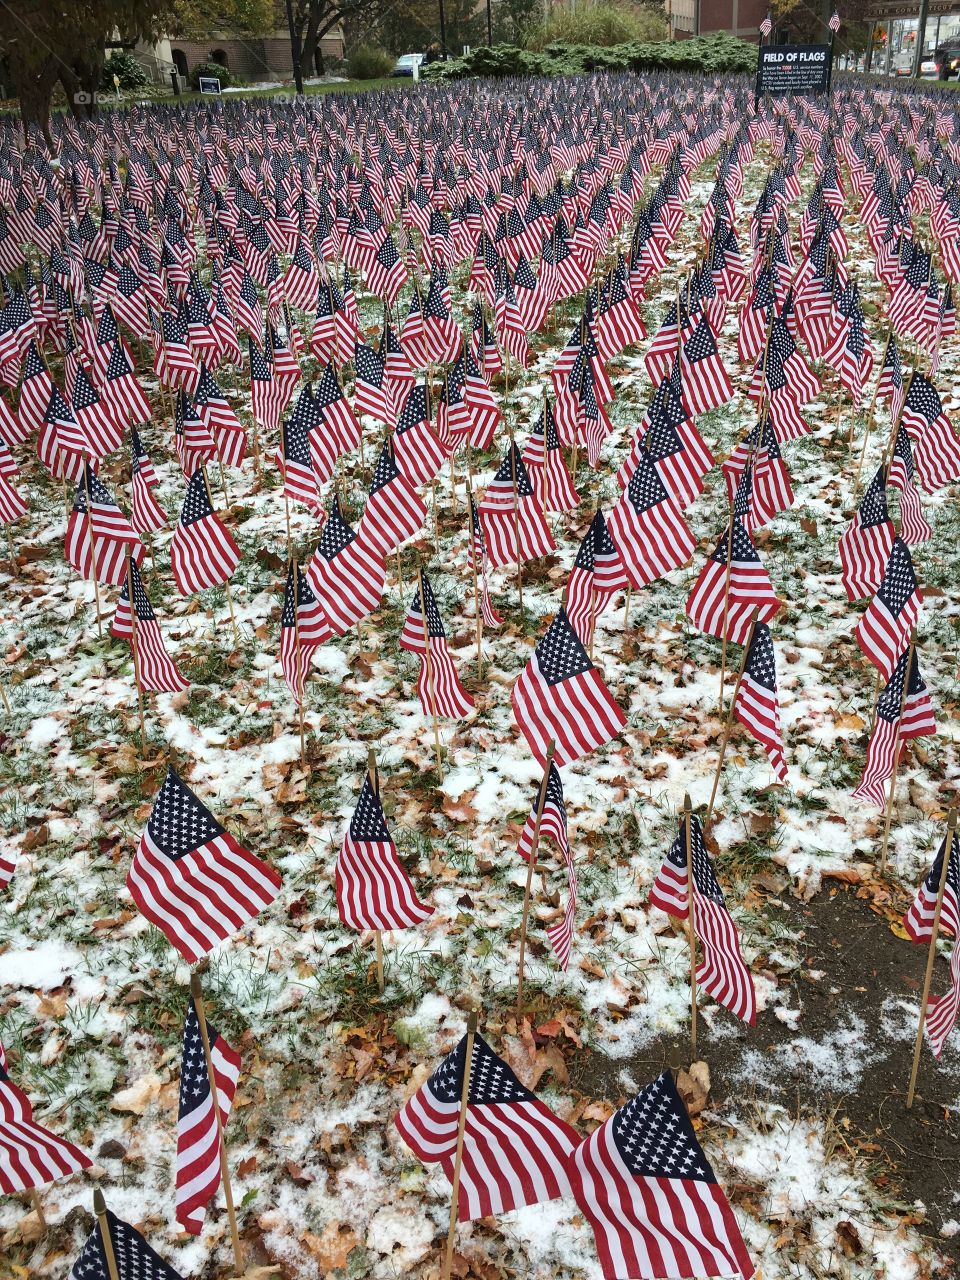 Field of flags in the snow